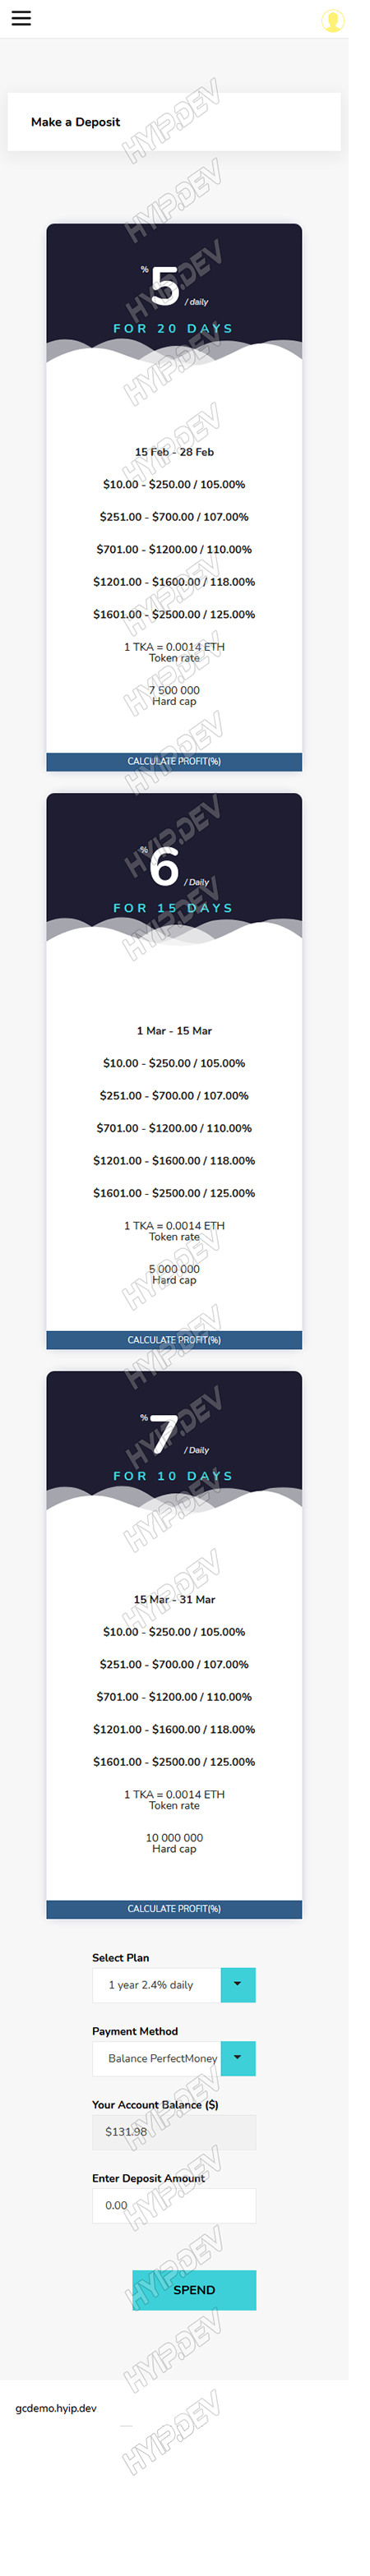 goldcoders hyip template no. 102, mobile page screenshot